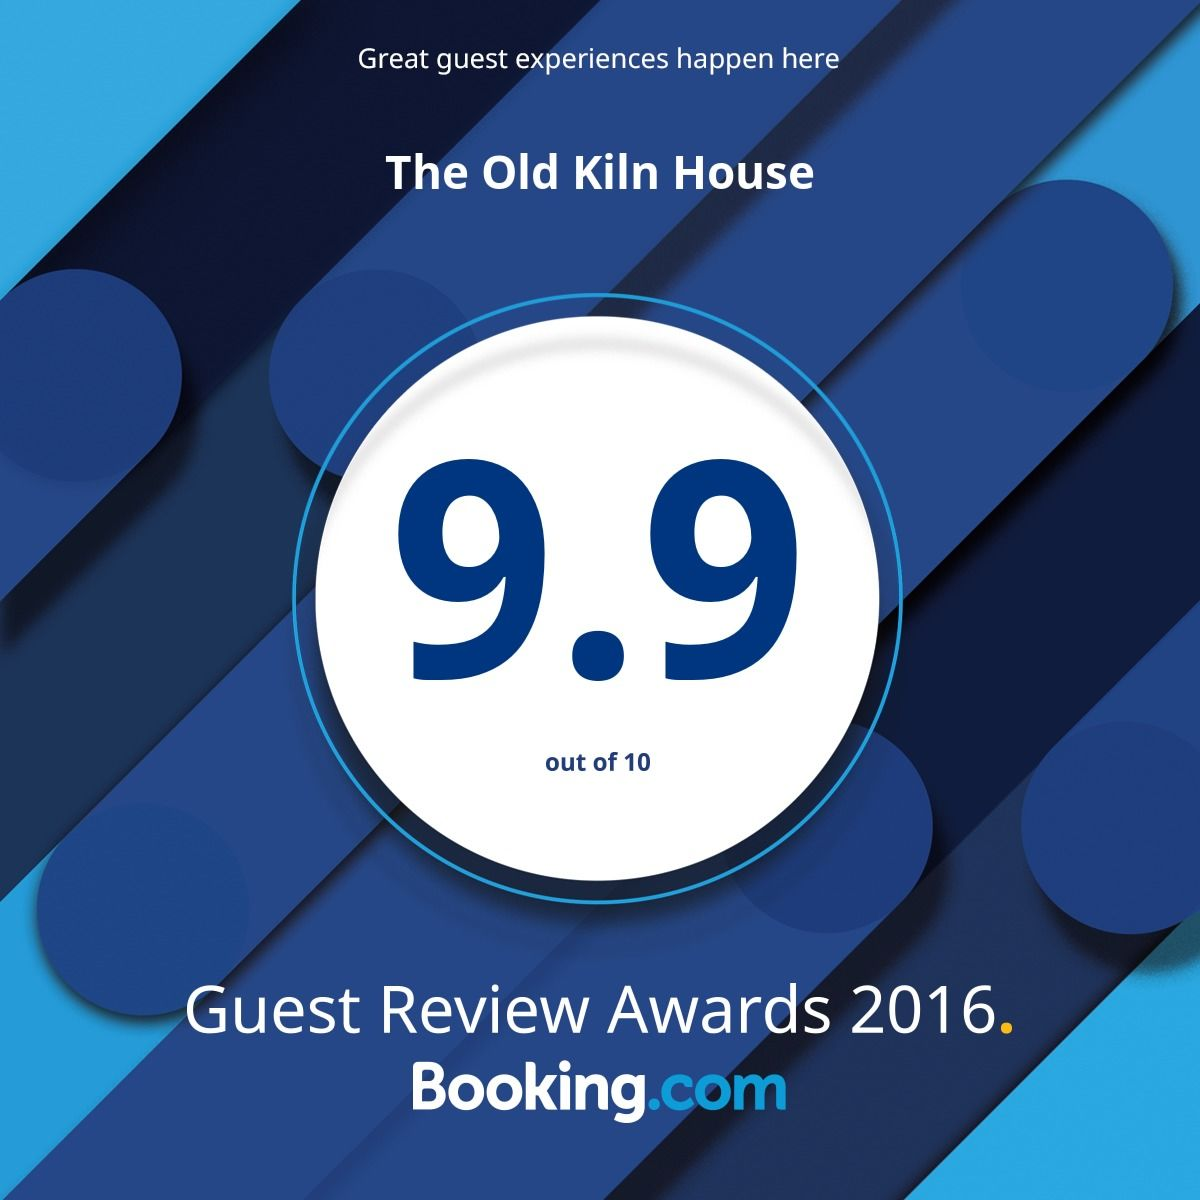 2017 Booking.com award of 9.9